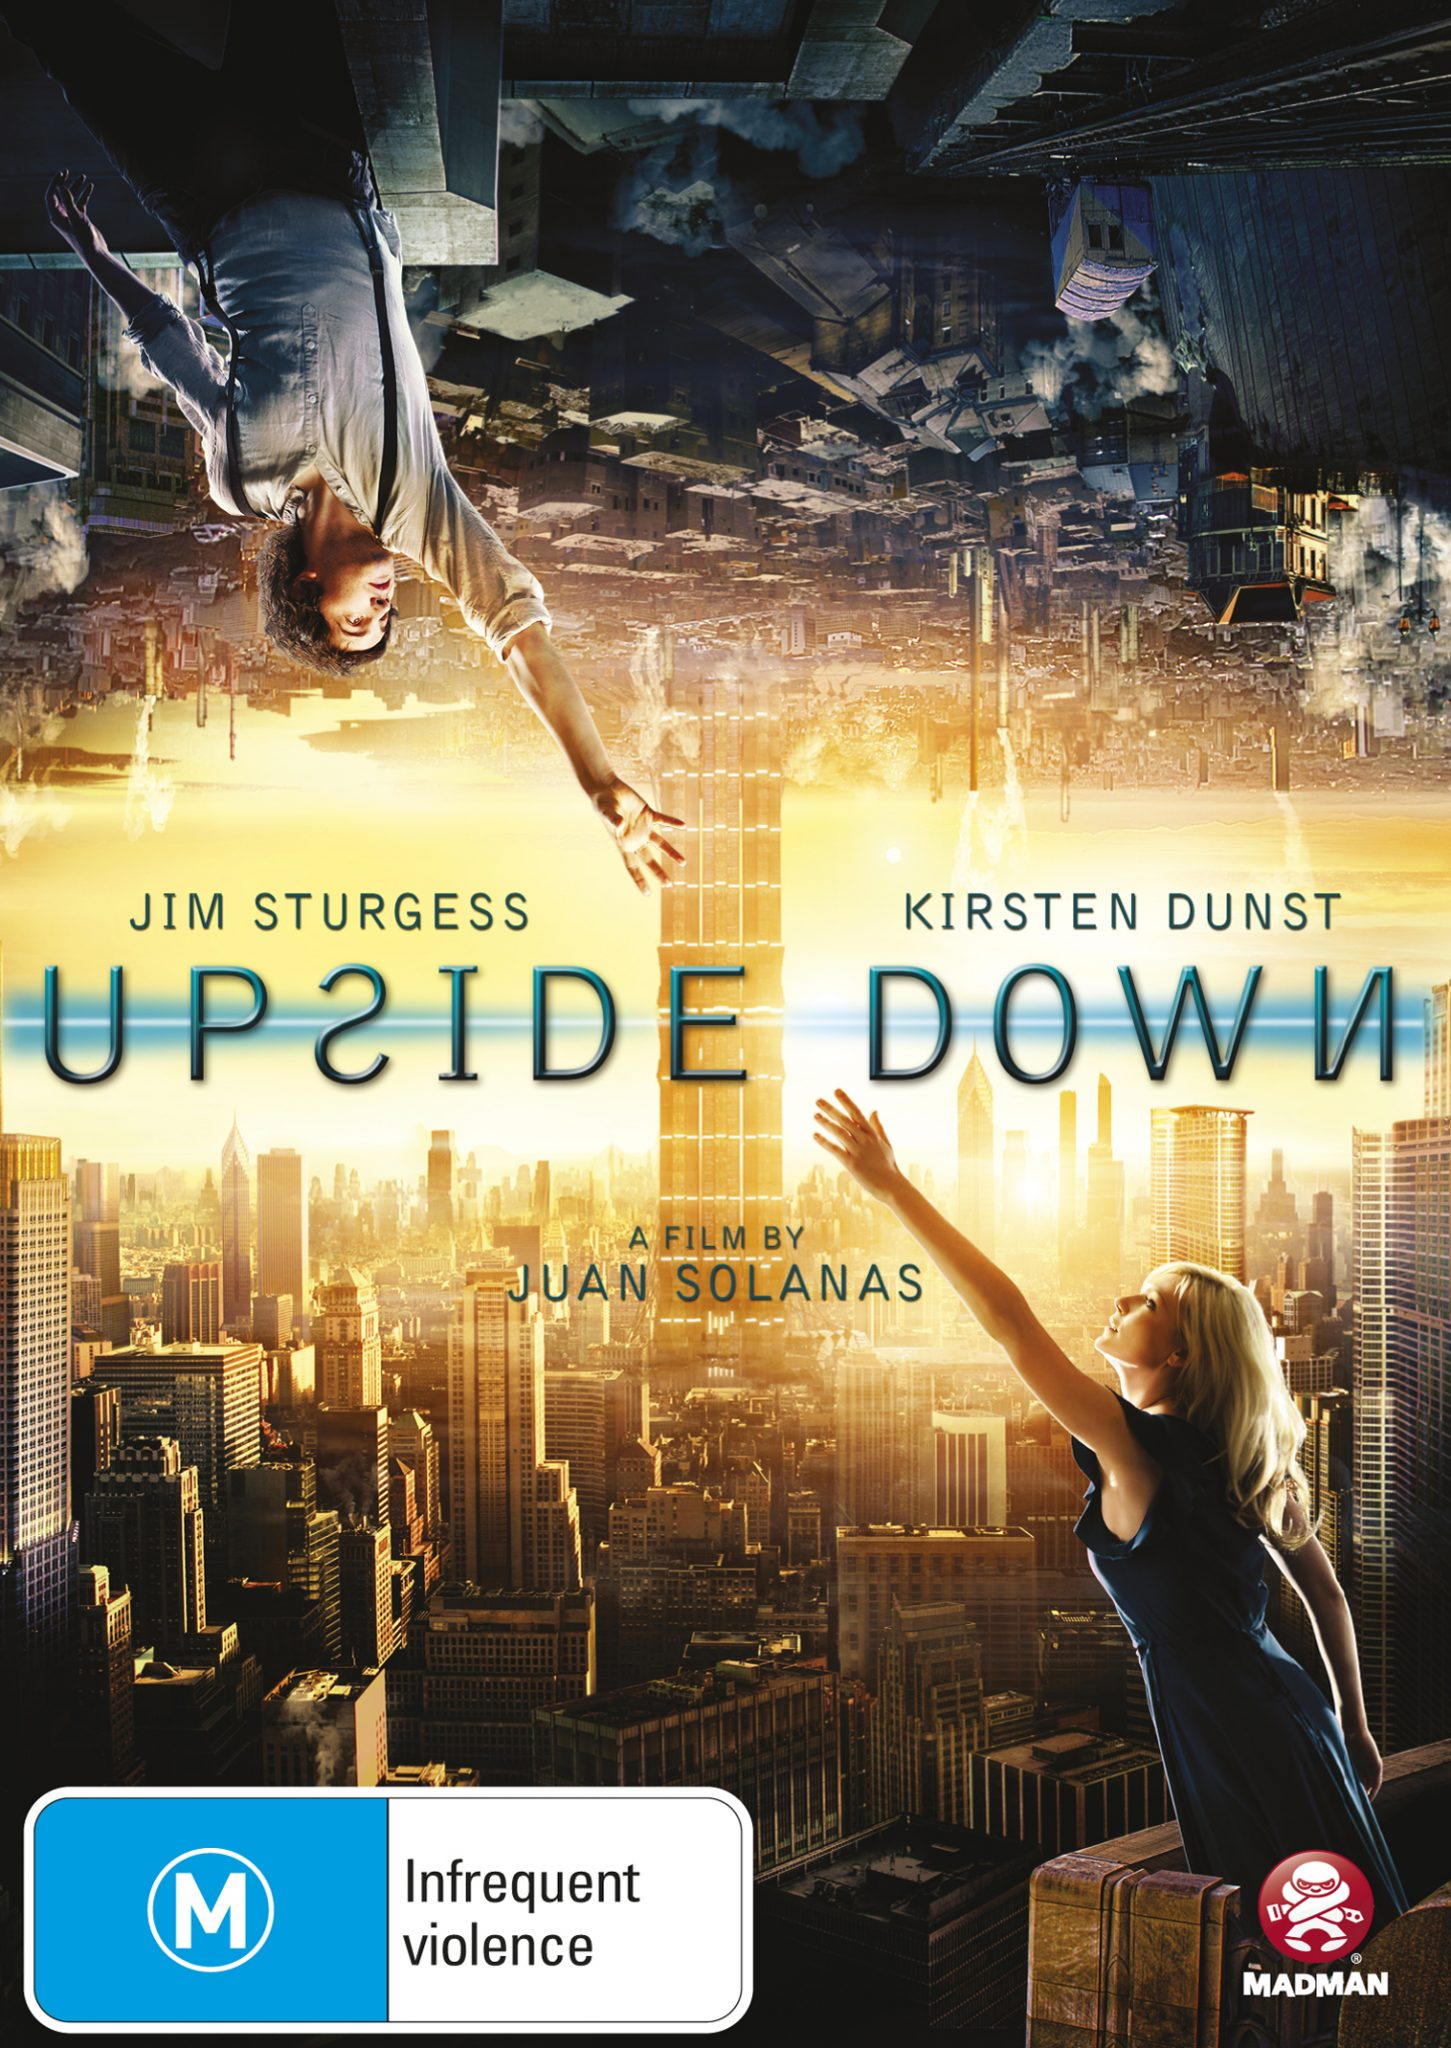 Film Review: Upside Down (2012)